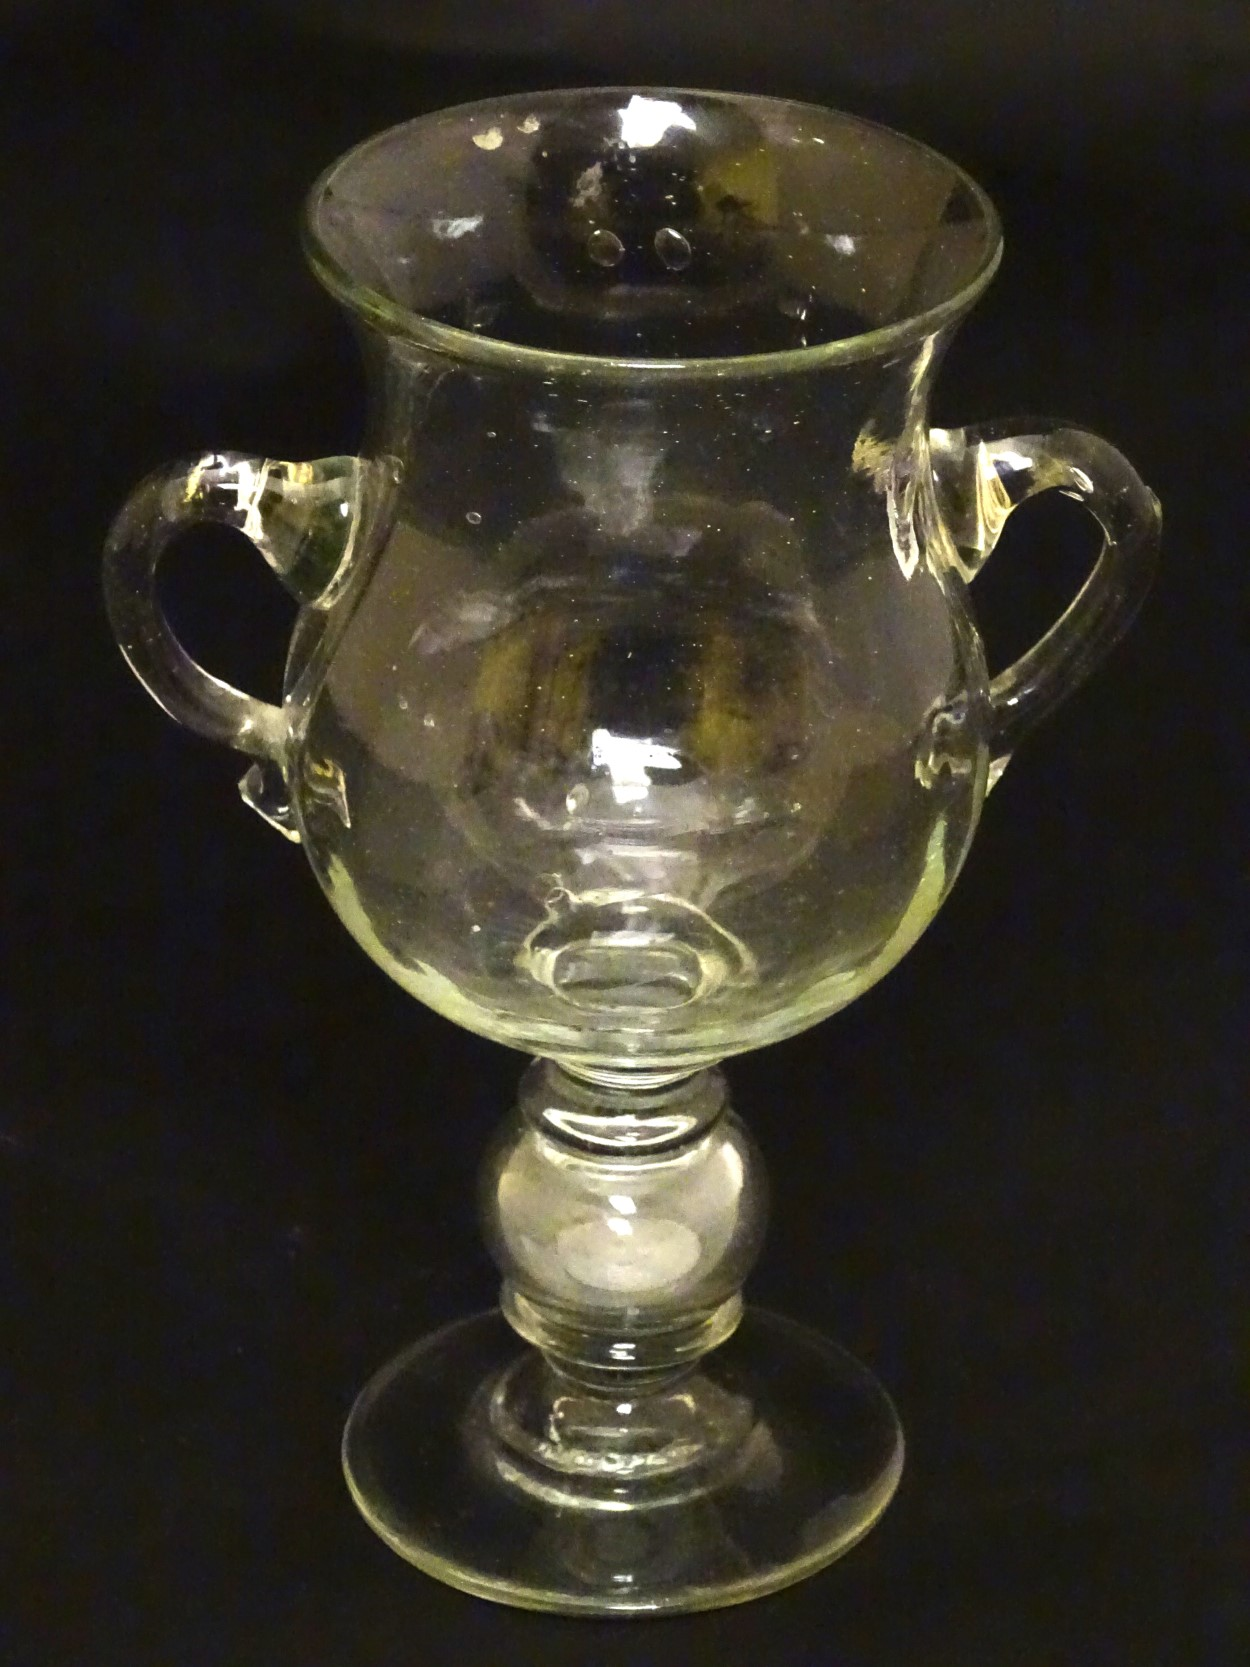 Lot 114 - Pedestal glass with coin : a two handled pedestal early 20 th C glass having a ground pontil scar,